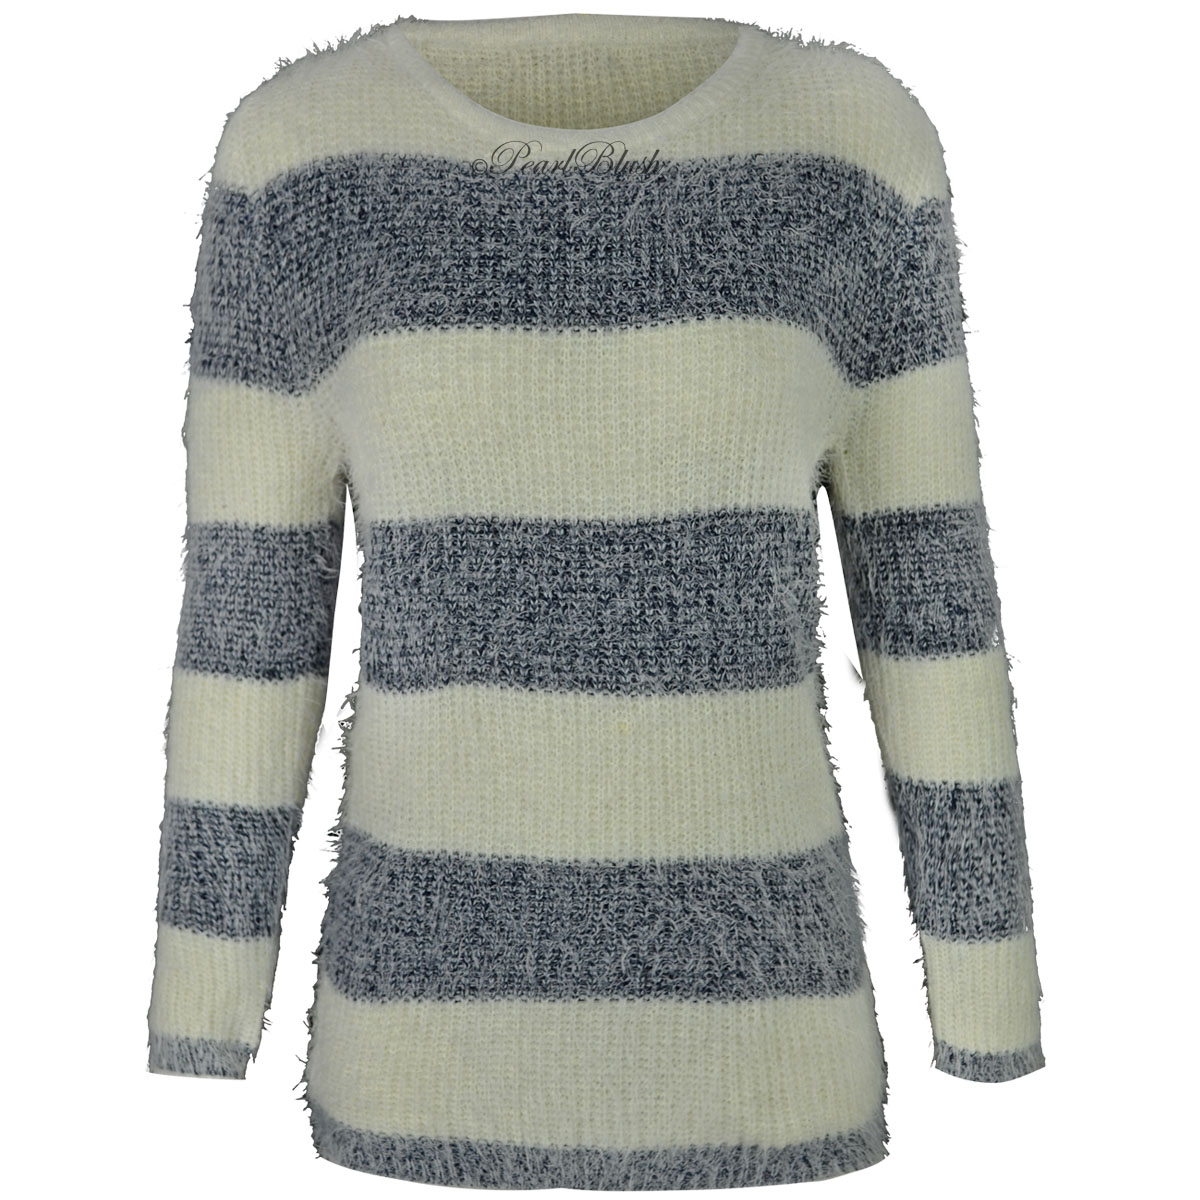 Shop womens jumpers at M&S. From soft lightweight layering knits to chunky statement, cable knit, embellished & cashmere knits. Buy now.